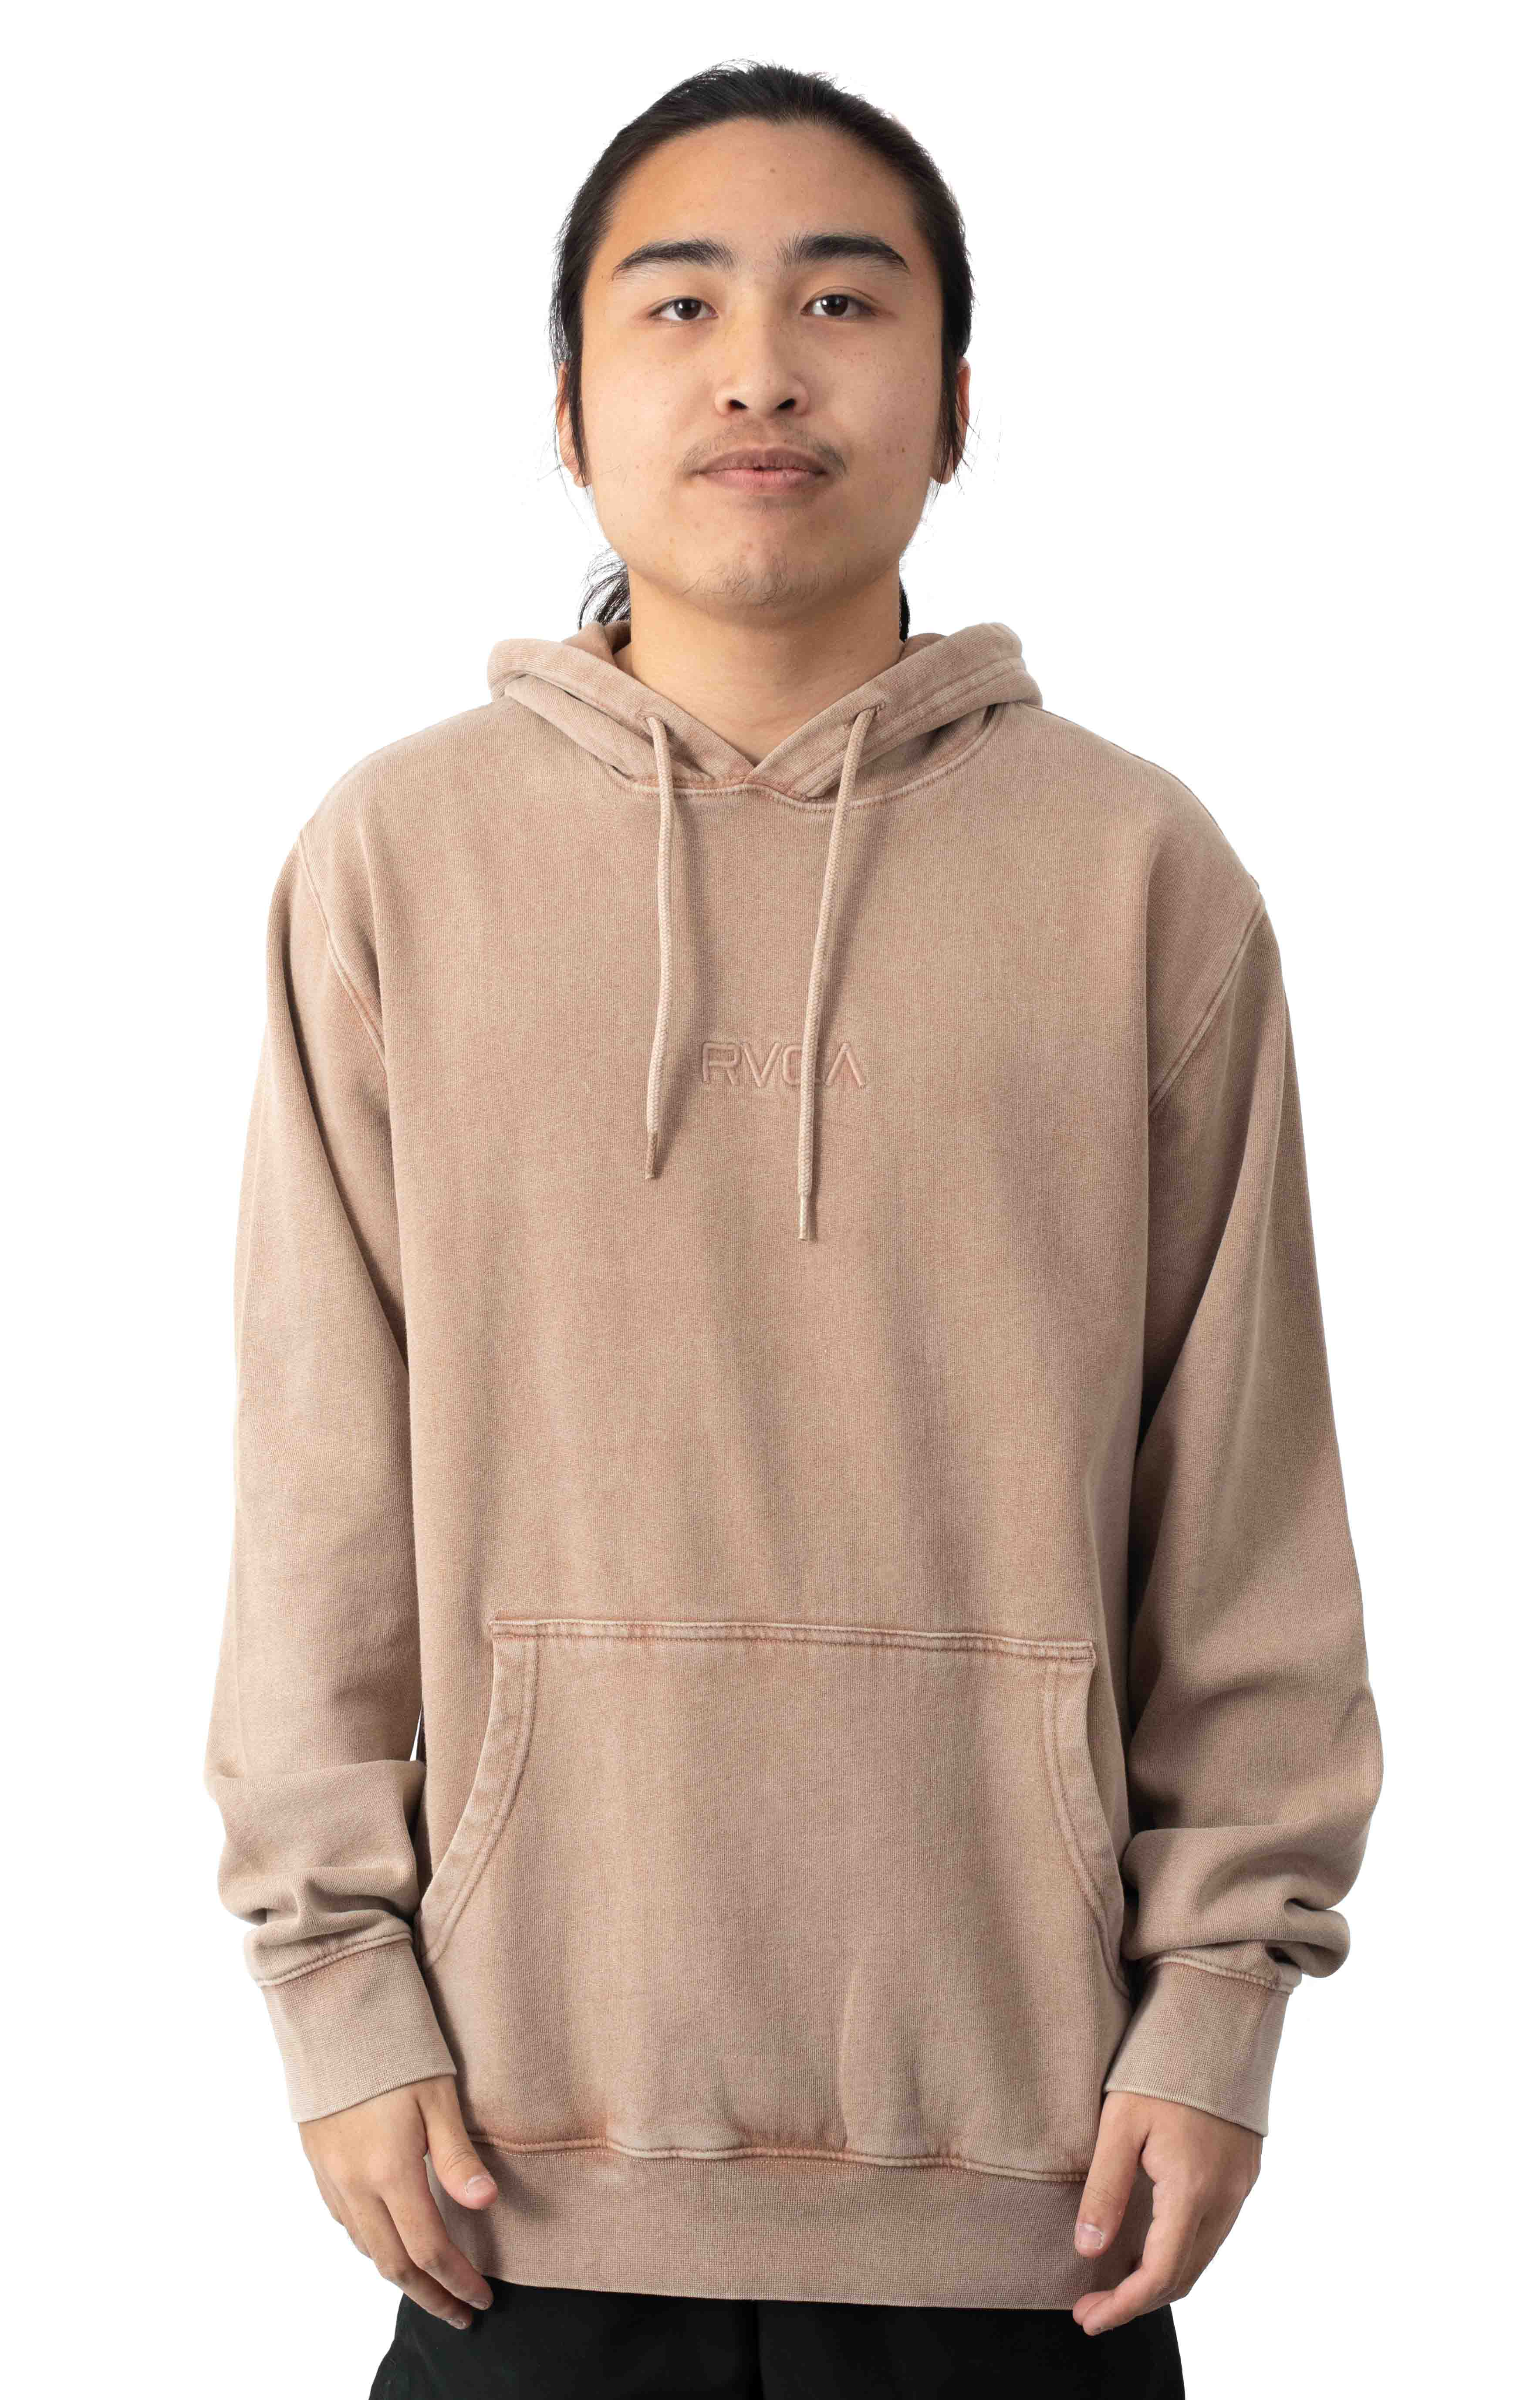 Mineral Pullover Hoodie - Camel